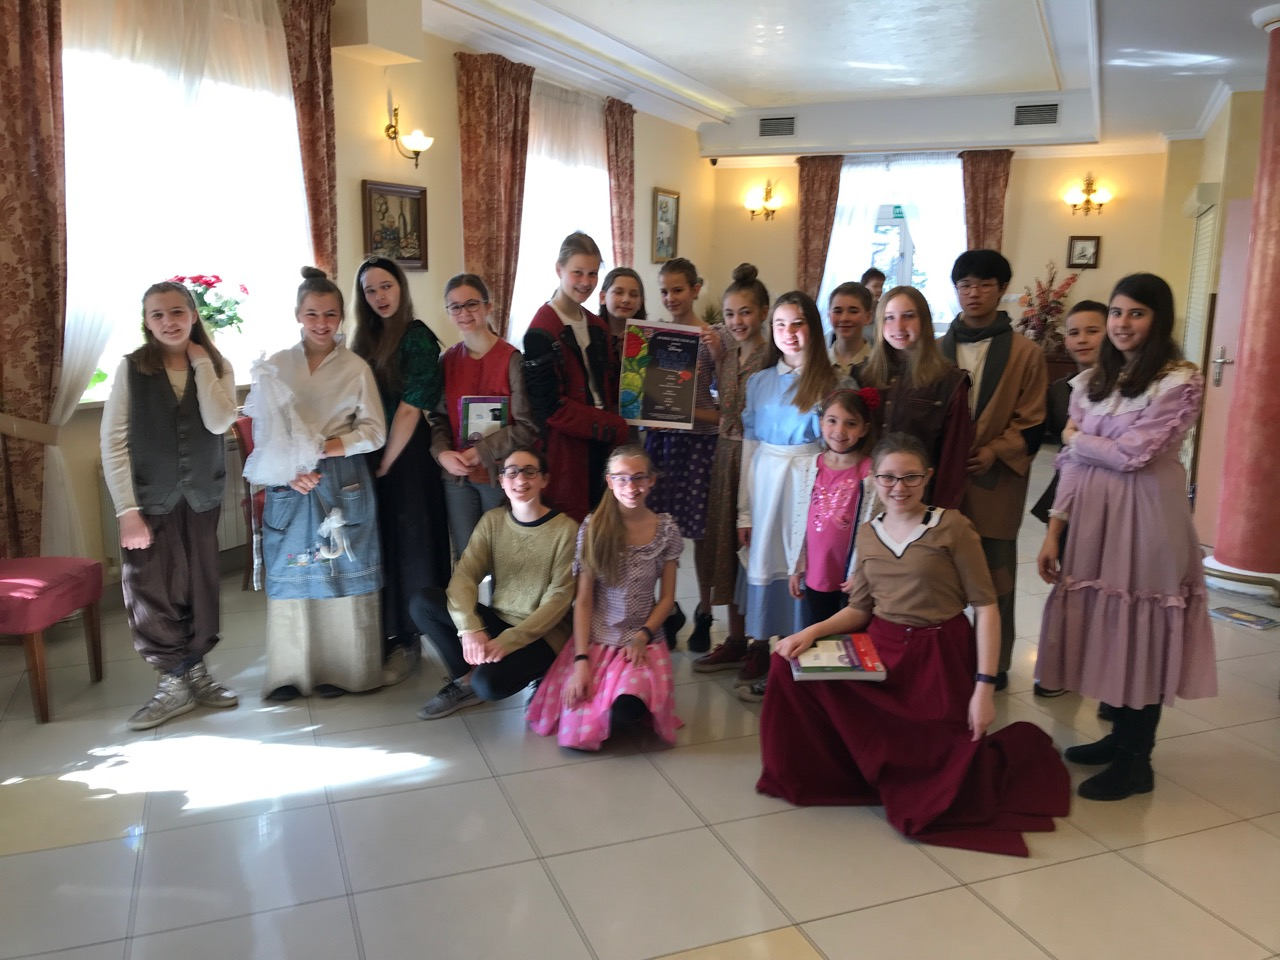 Beauty and the Beast Performed at Retirement Home